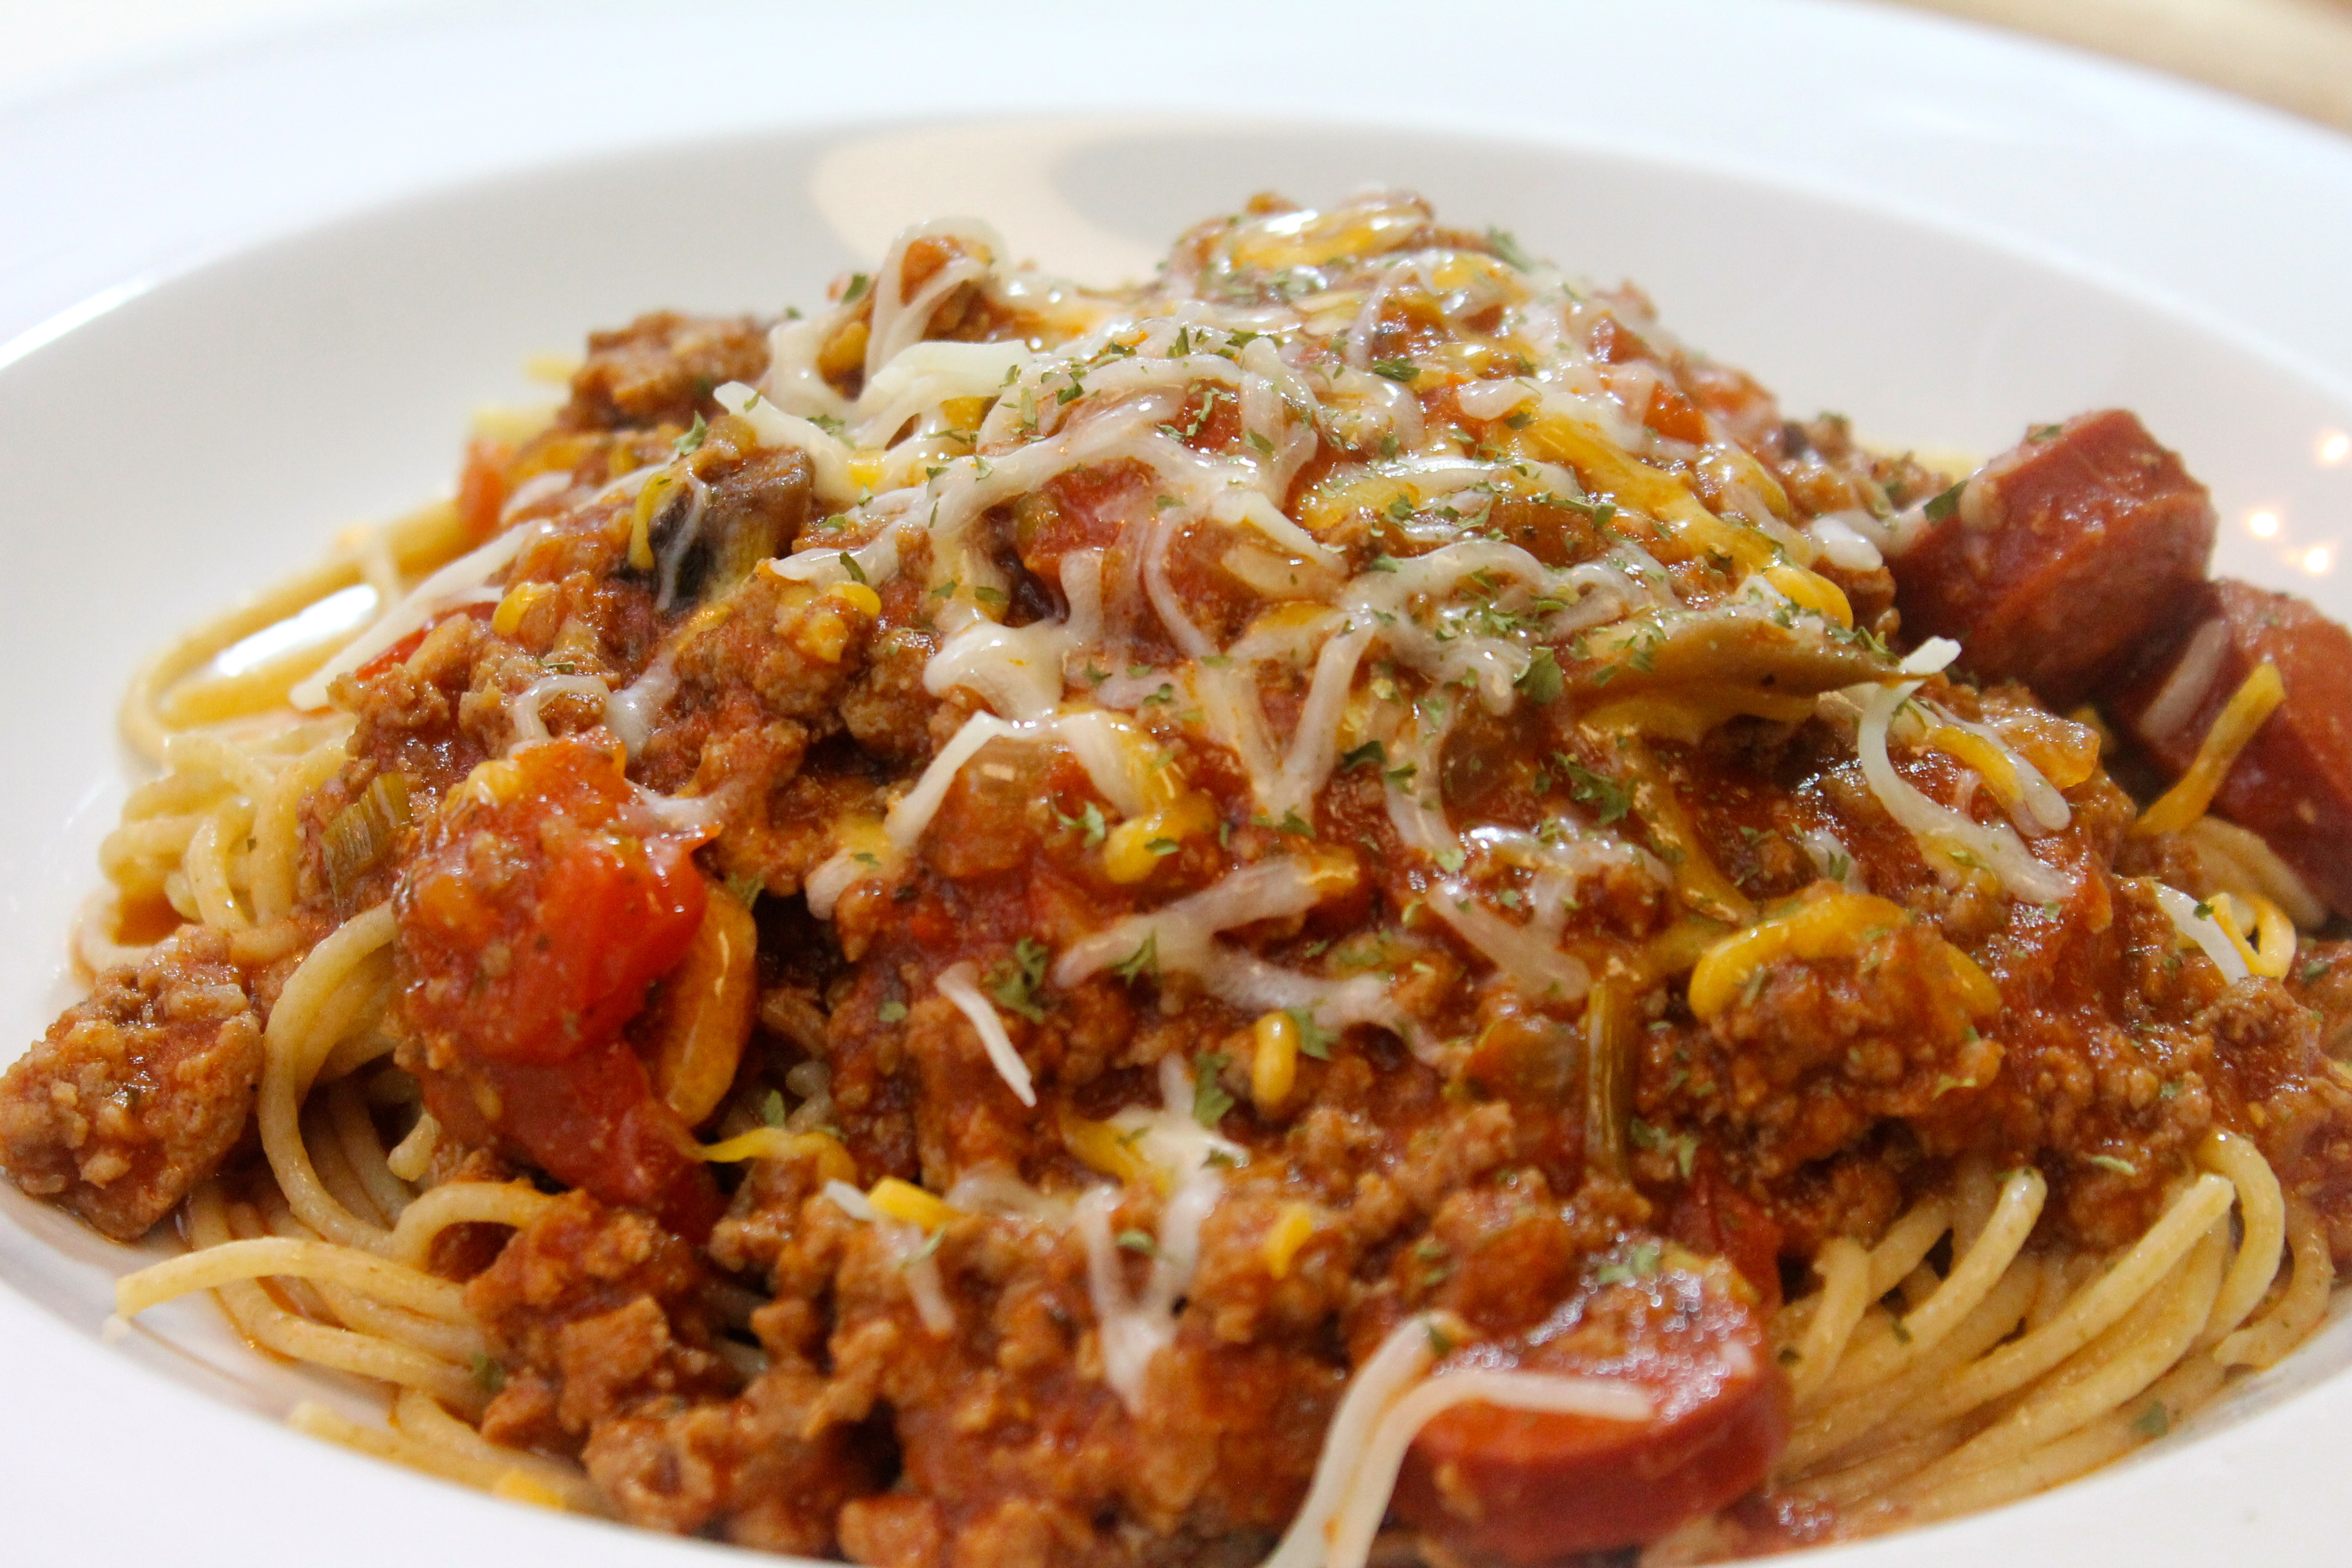 Spaghetti with hot links, sweet Italian sausage beef, and more!